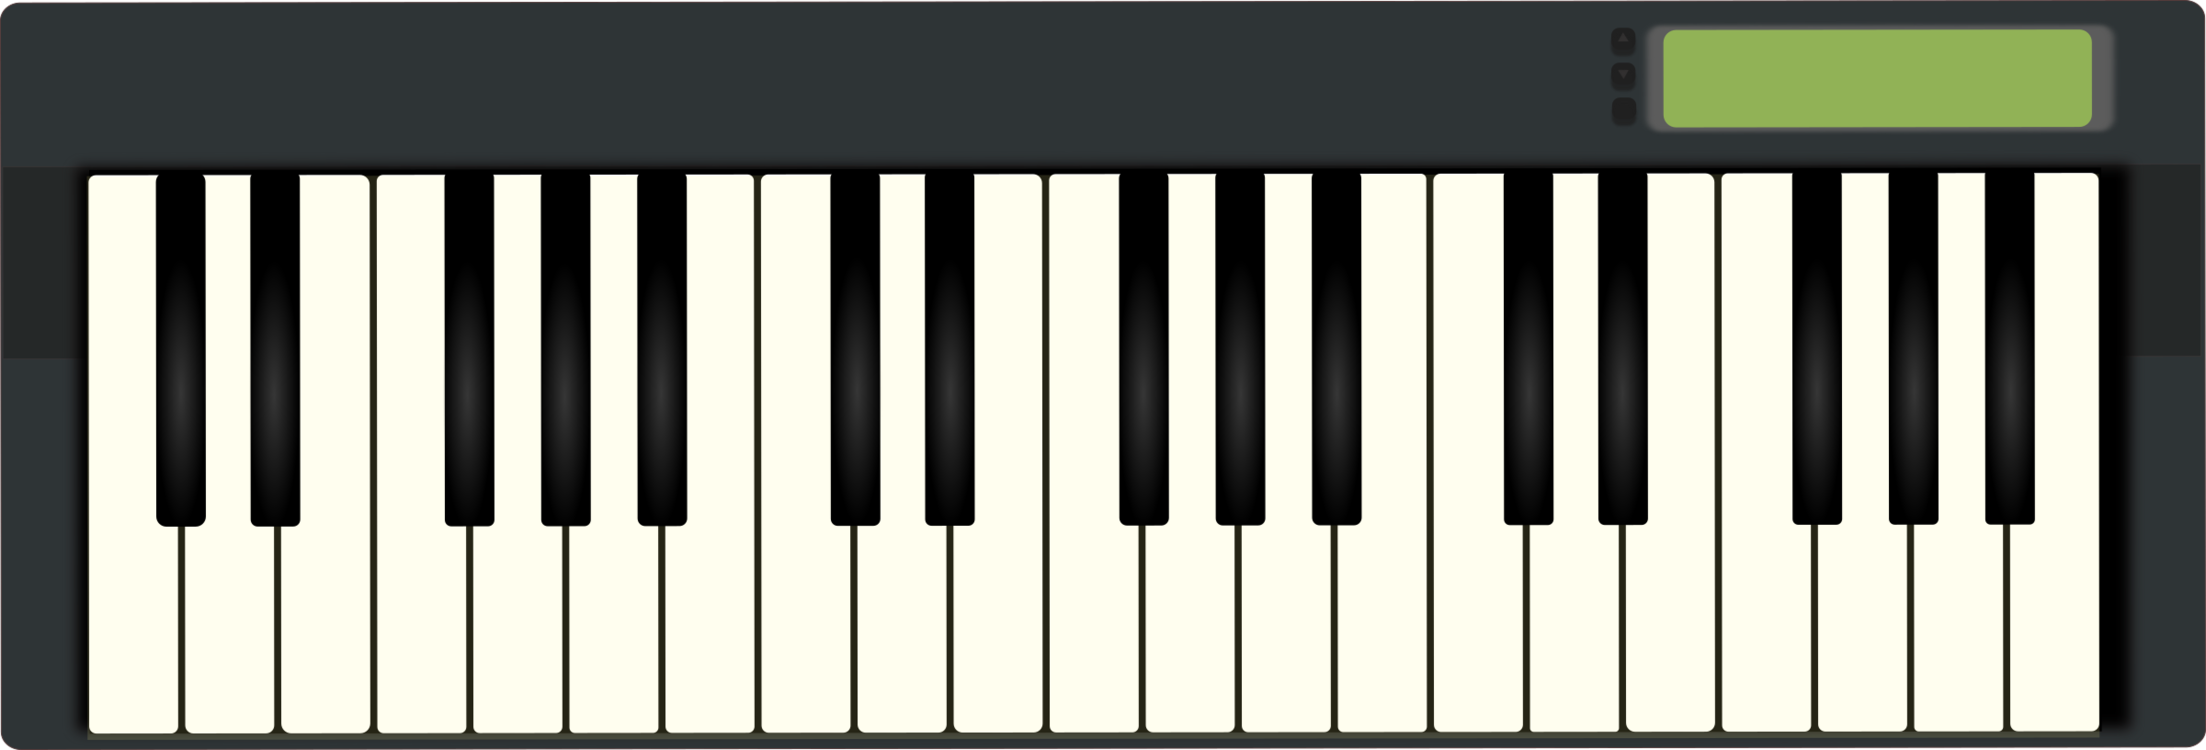 Musical instrument electric png. Piano clipart digital piano